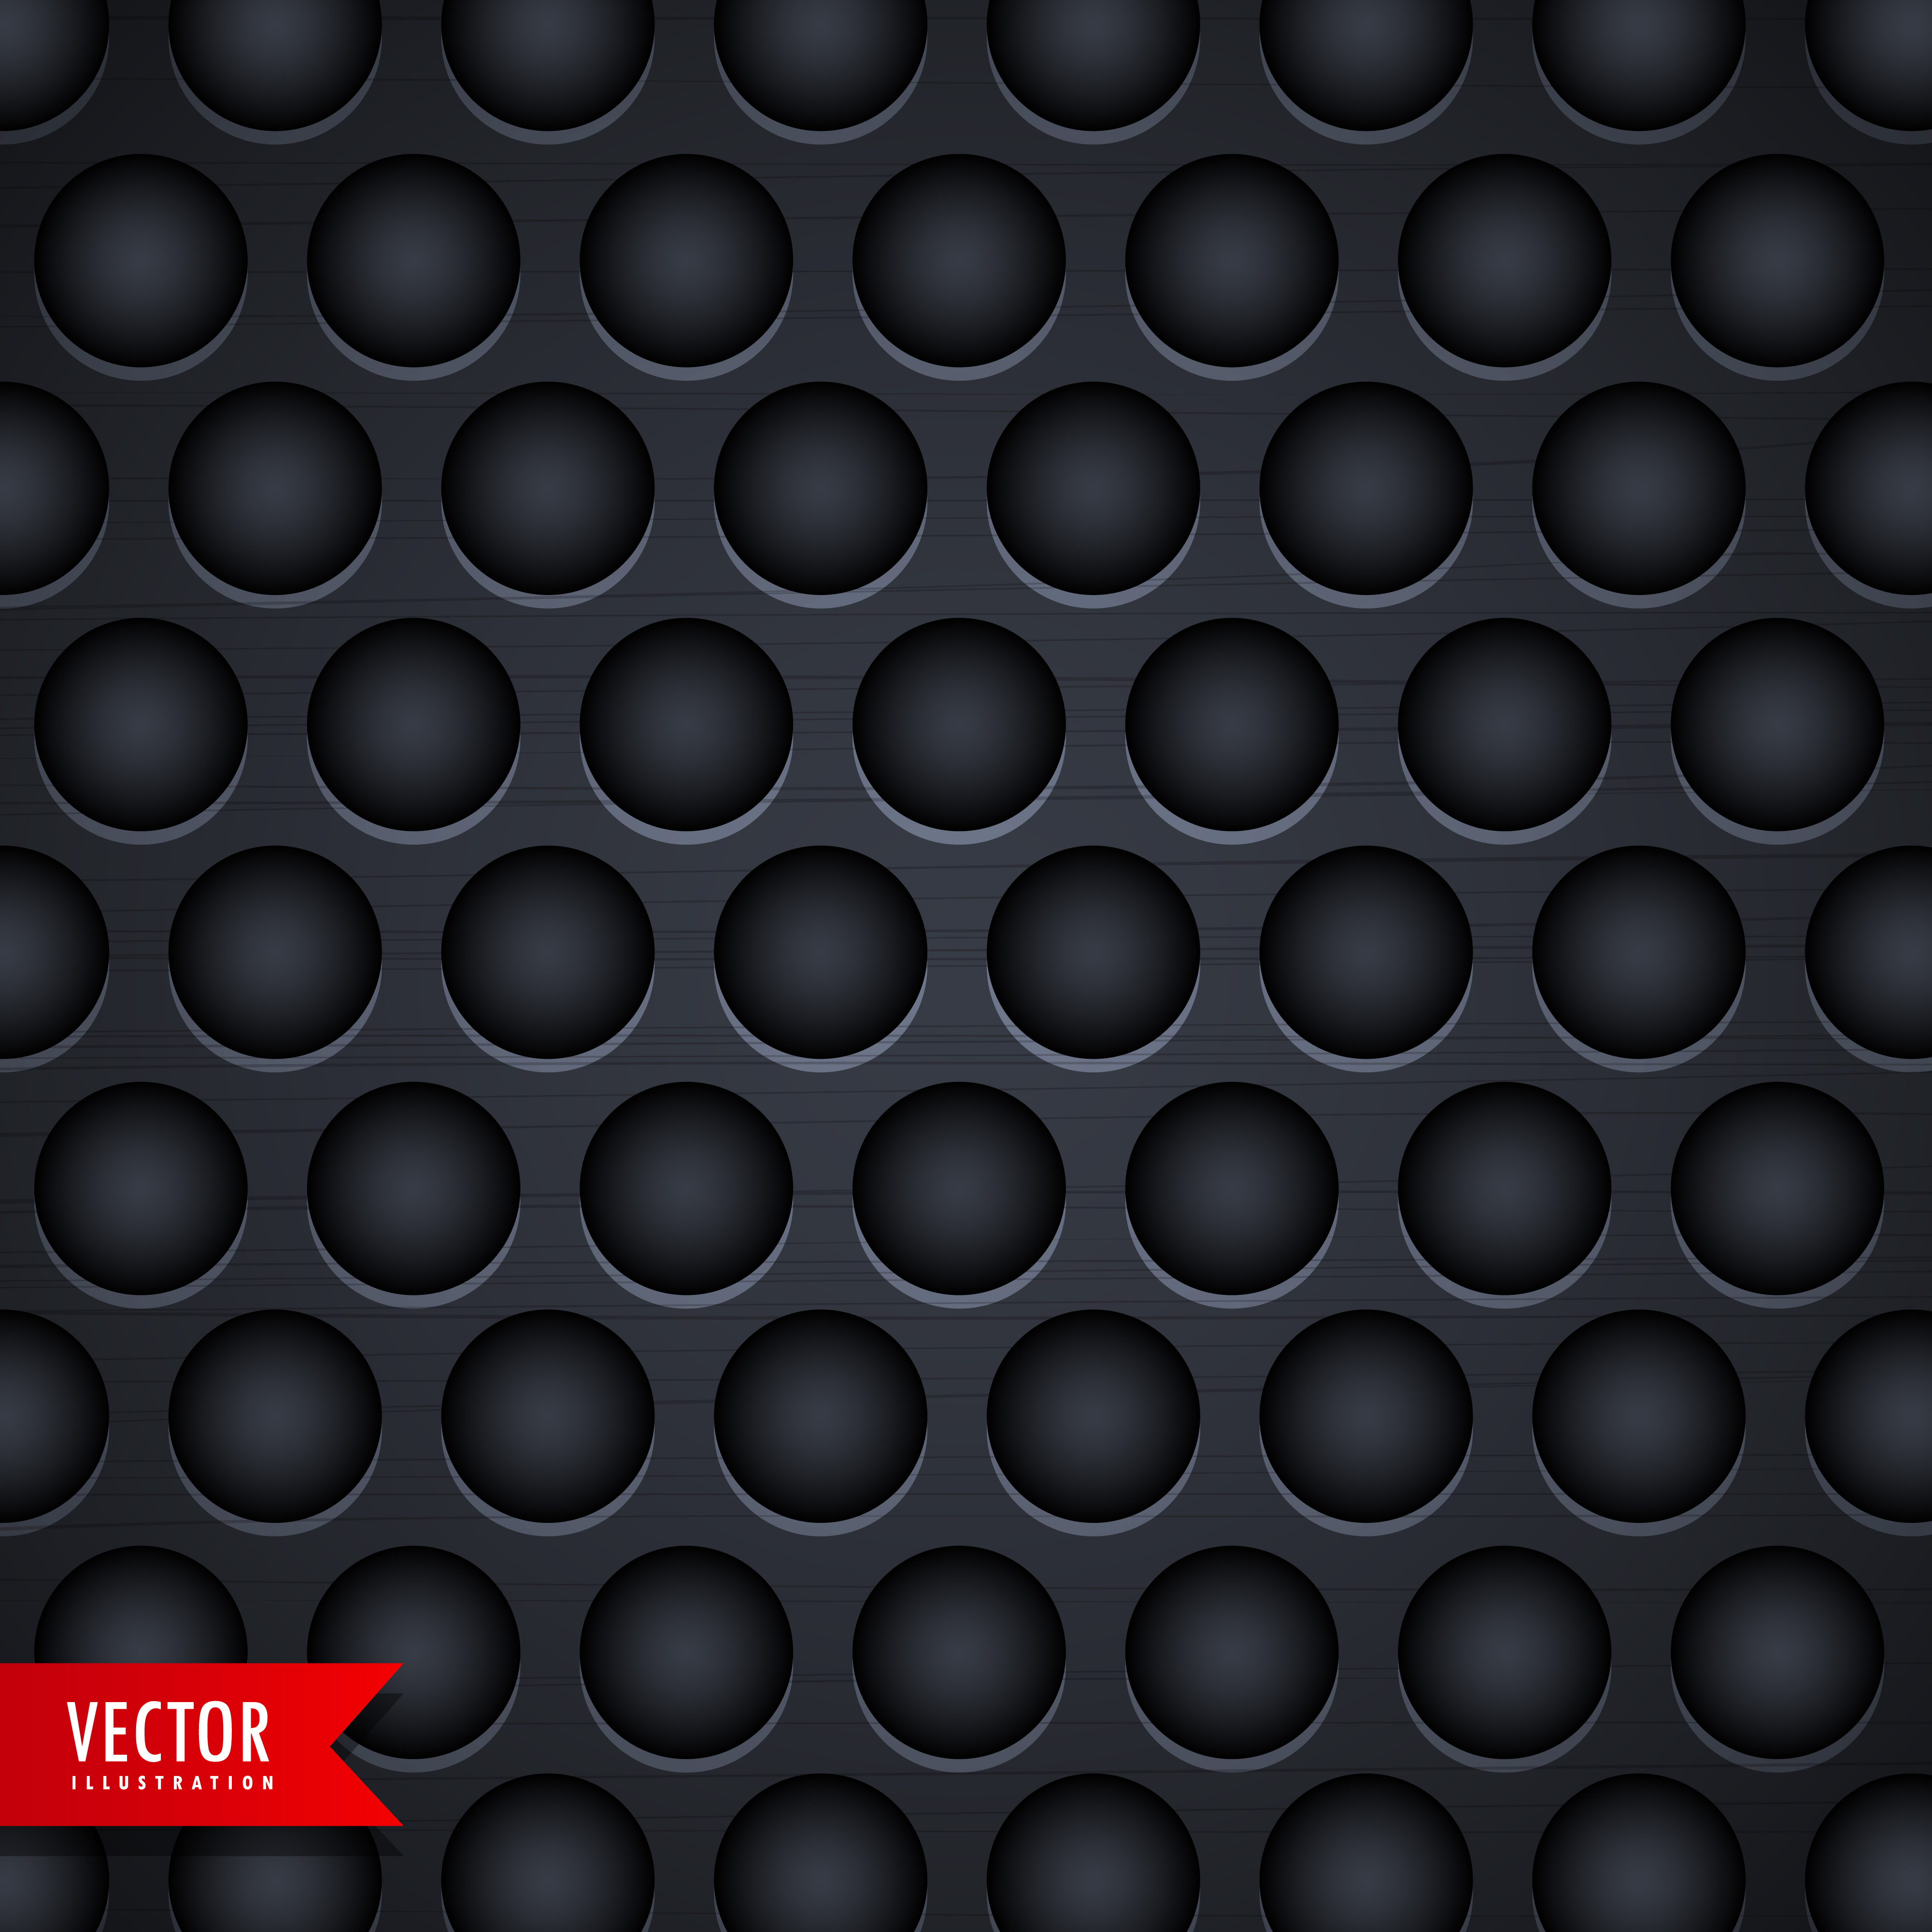 dark metal texture background with holes download free